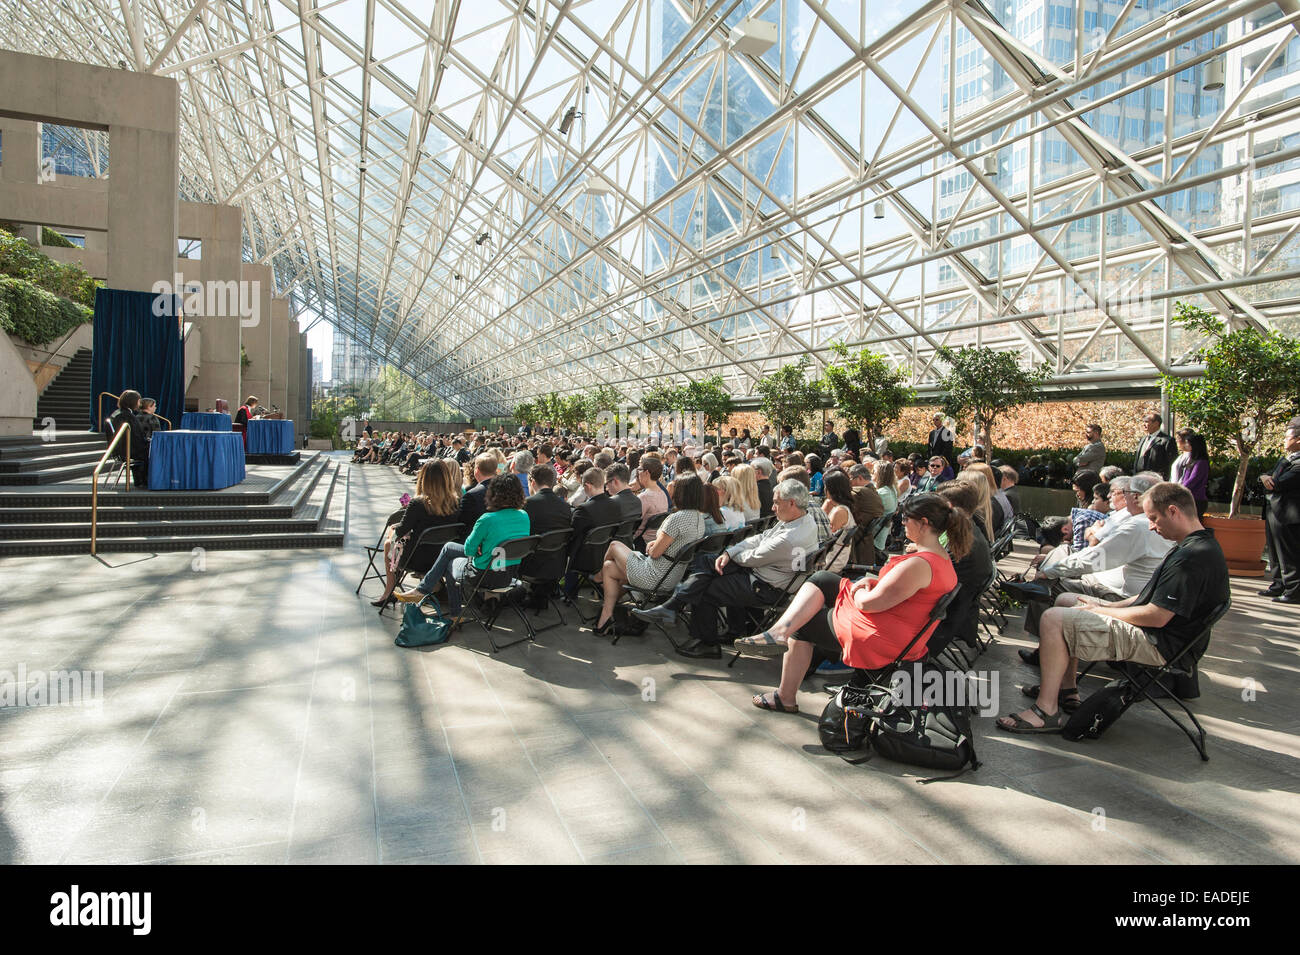 The Great Hall at the Vancouver Law Courts where a Call to the Bar is being held. - Stock Image